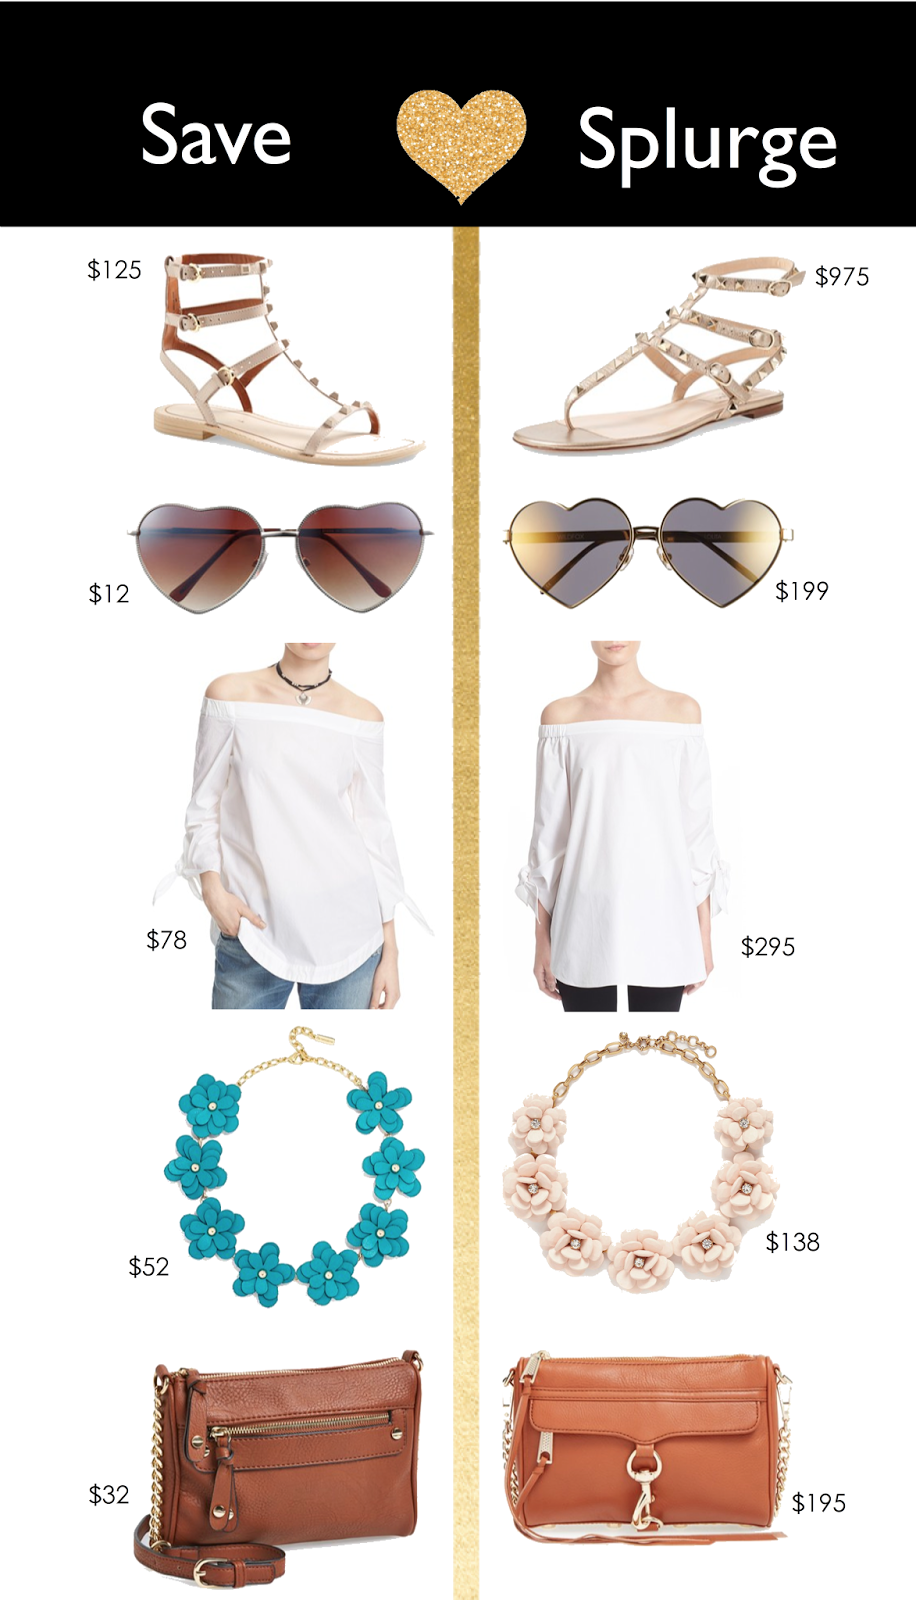 rebecca minkoff dupe, mini mac rebecca mink off knock off, valentino knock off, rebecca mink off look a like, valentino rock stud sandals dupes, jcrew flower necklace knockoff, j crew flower necklace similar cheaper, tibi off the shoulder dupe, tibi off the shoulder look a like, heart shaped sunglasses nordstrom, wild fox sunglasses look a like, wild fox sunglasses knock off